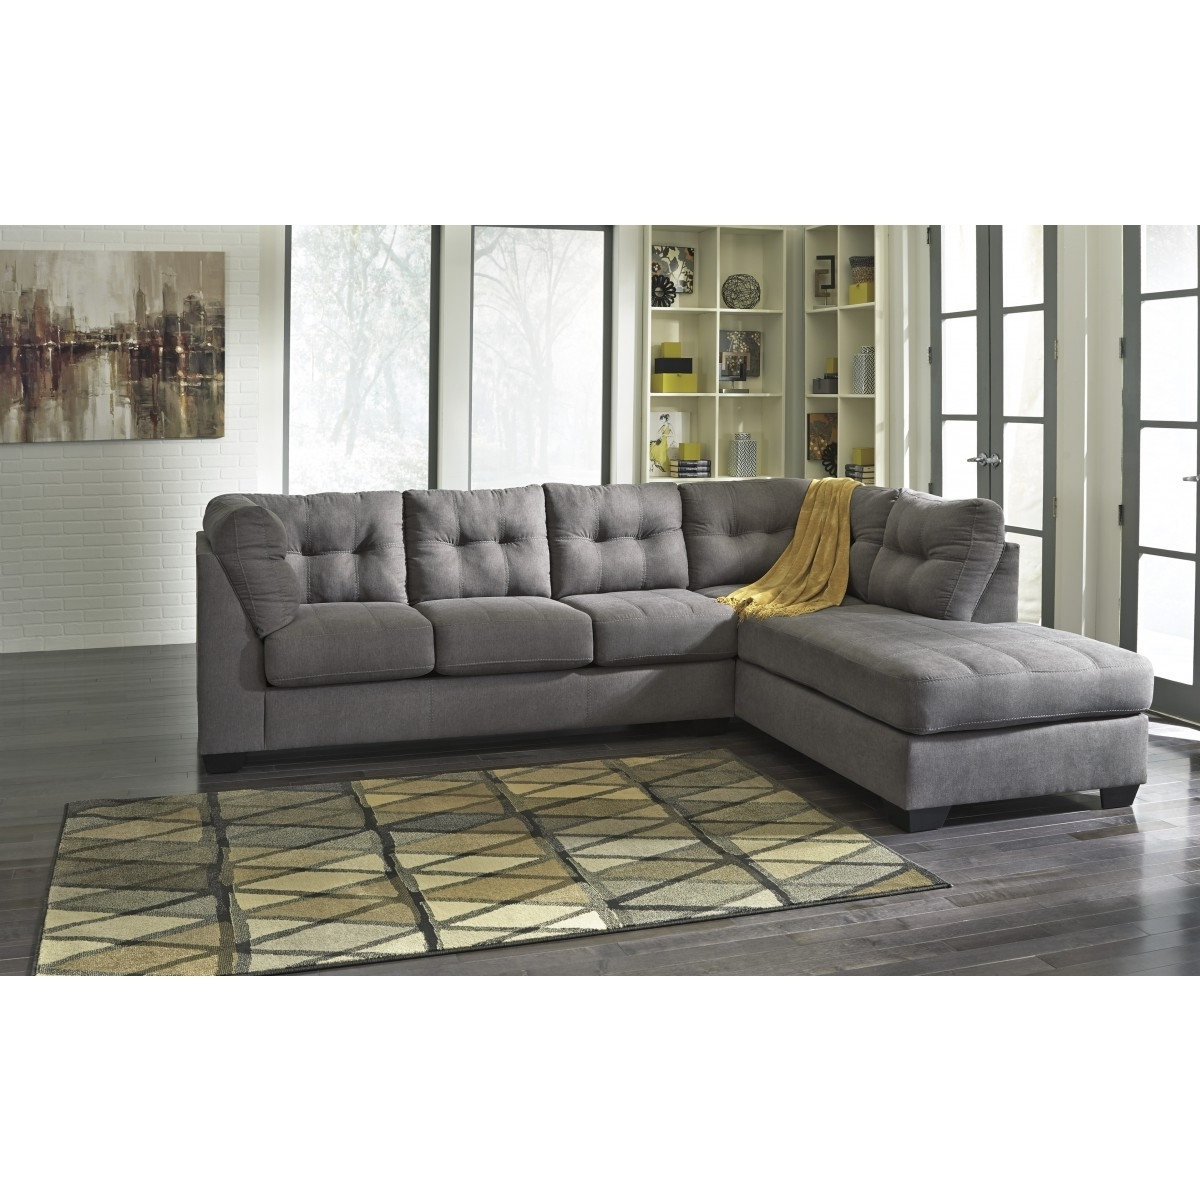 Newest Maier Charcoal Corner Chaise Sectional For Sectional Chaises (View 8 of 15)